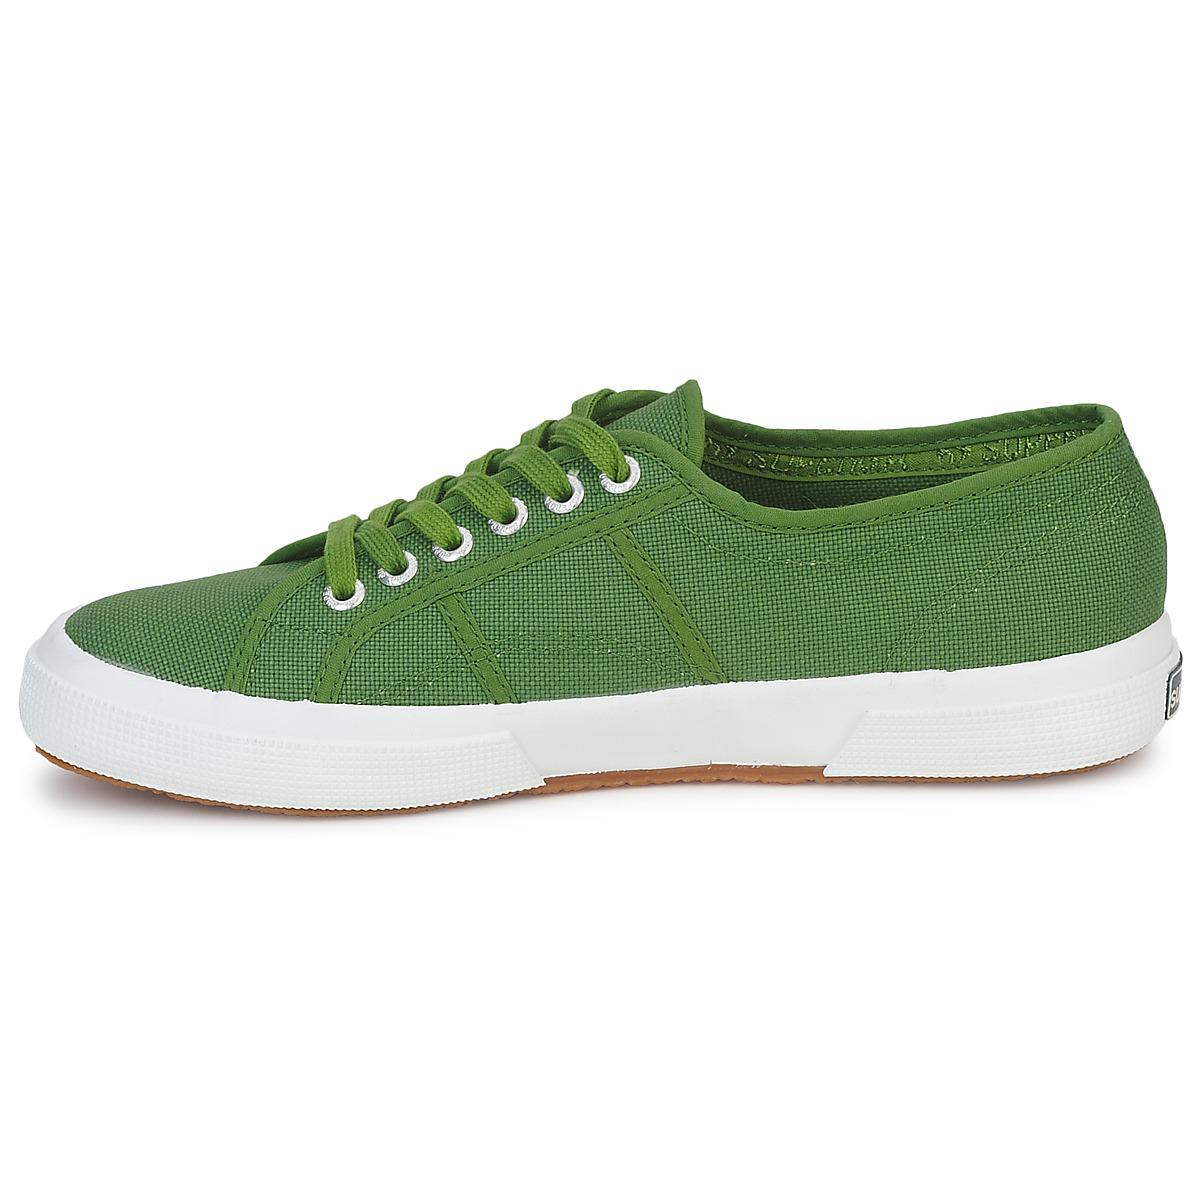 Superga 2750 Cotu Classic Shoes (trainers) in Green